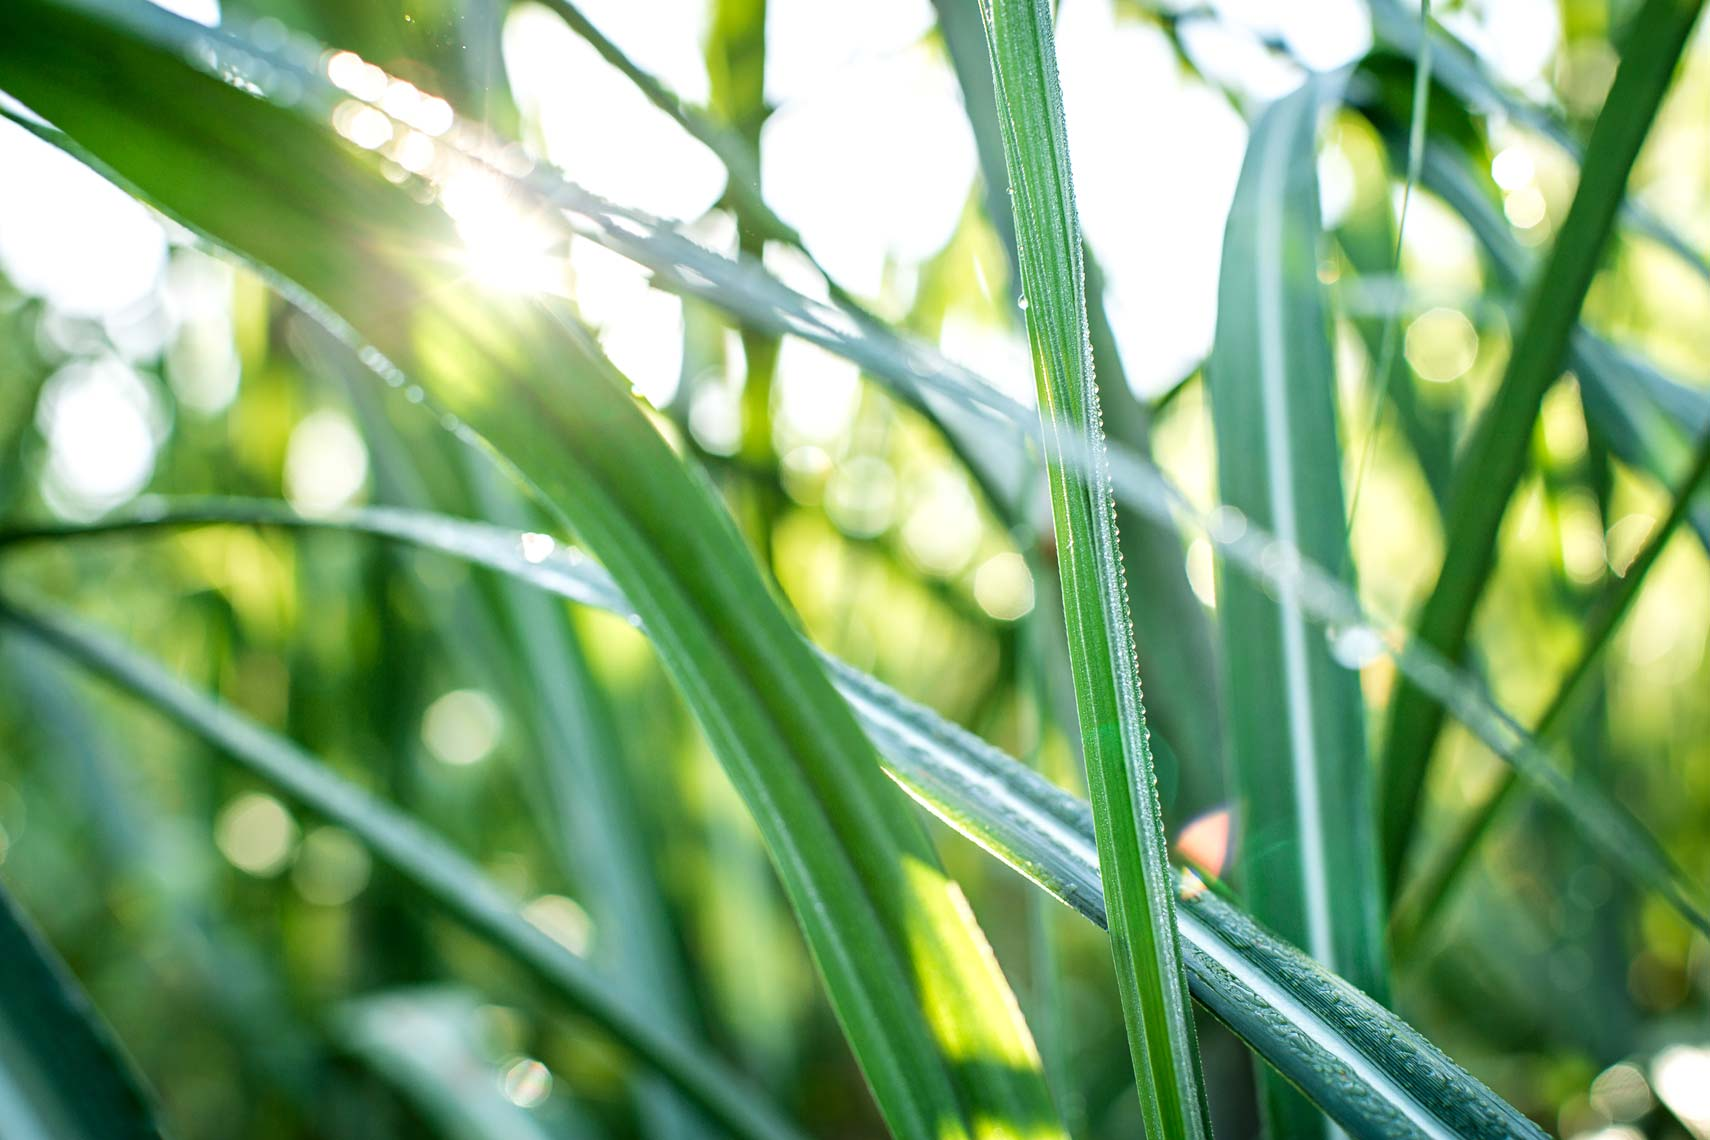 Sugarcane in the sun by Atlanta lifestyle photographer Nick Burchell